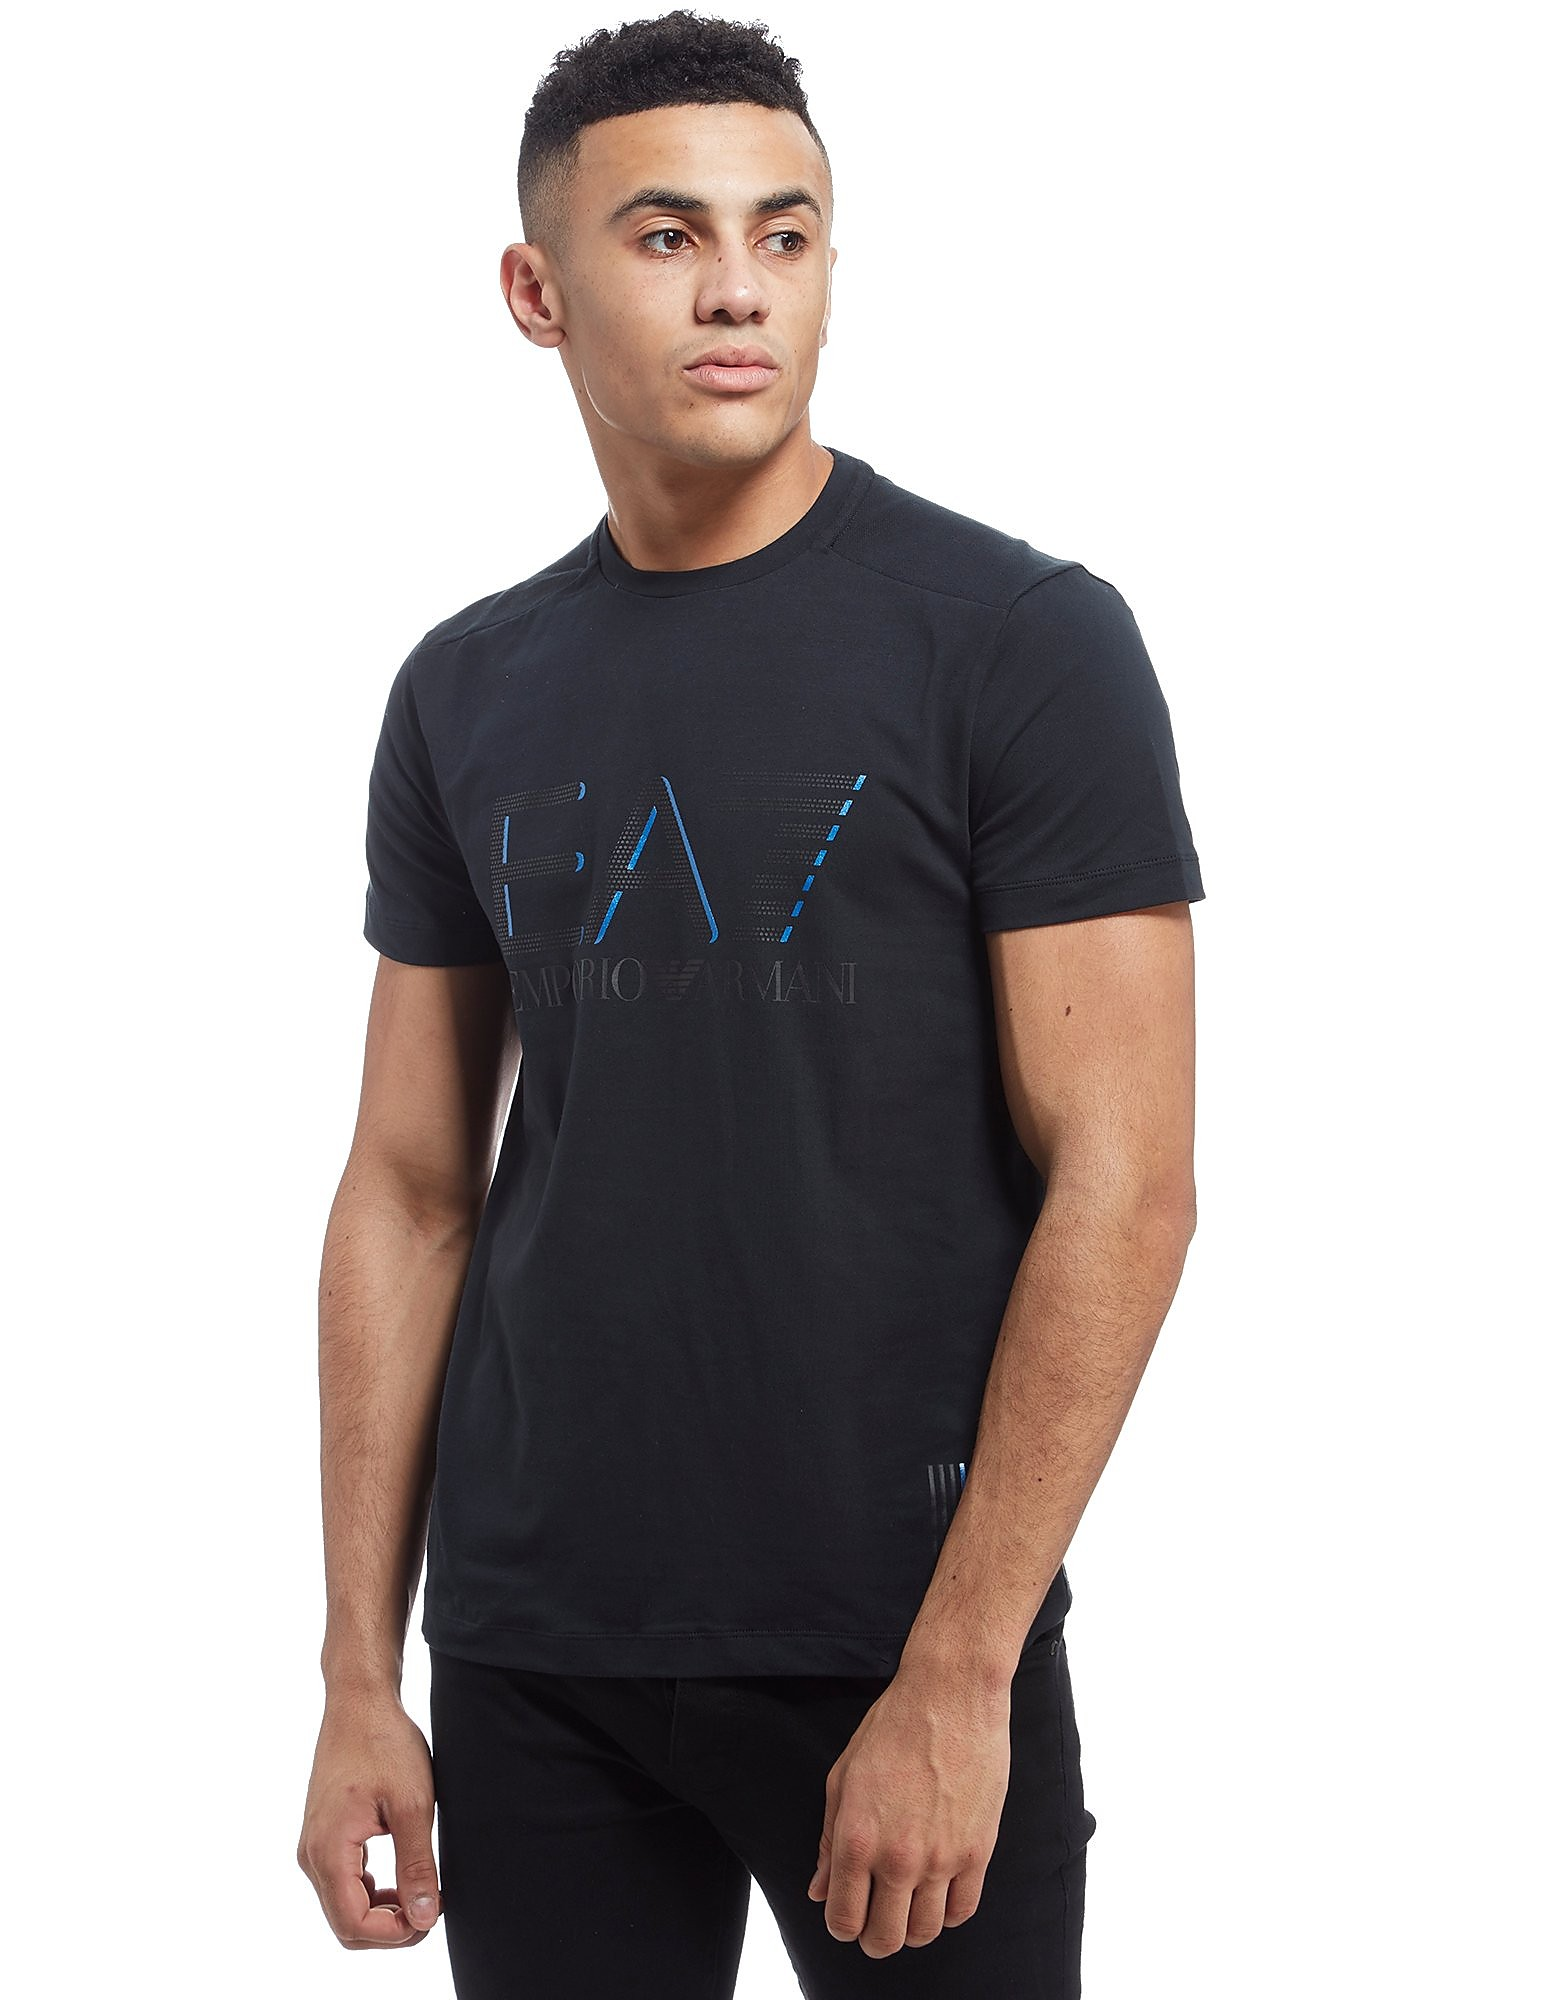 Emporio Armani EA7 Evolution T-Shirt